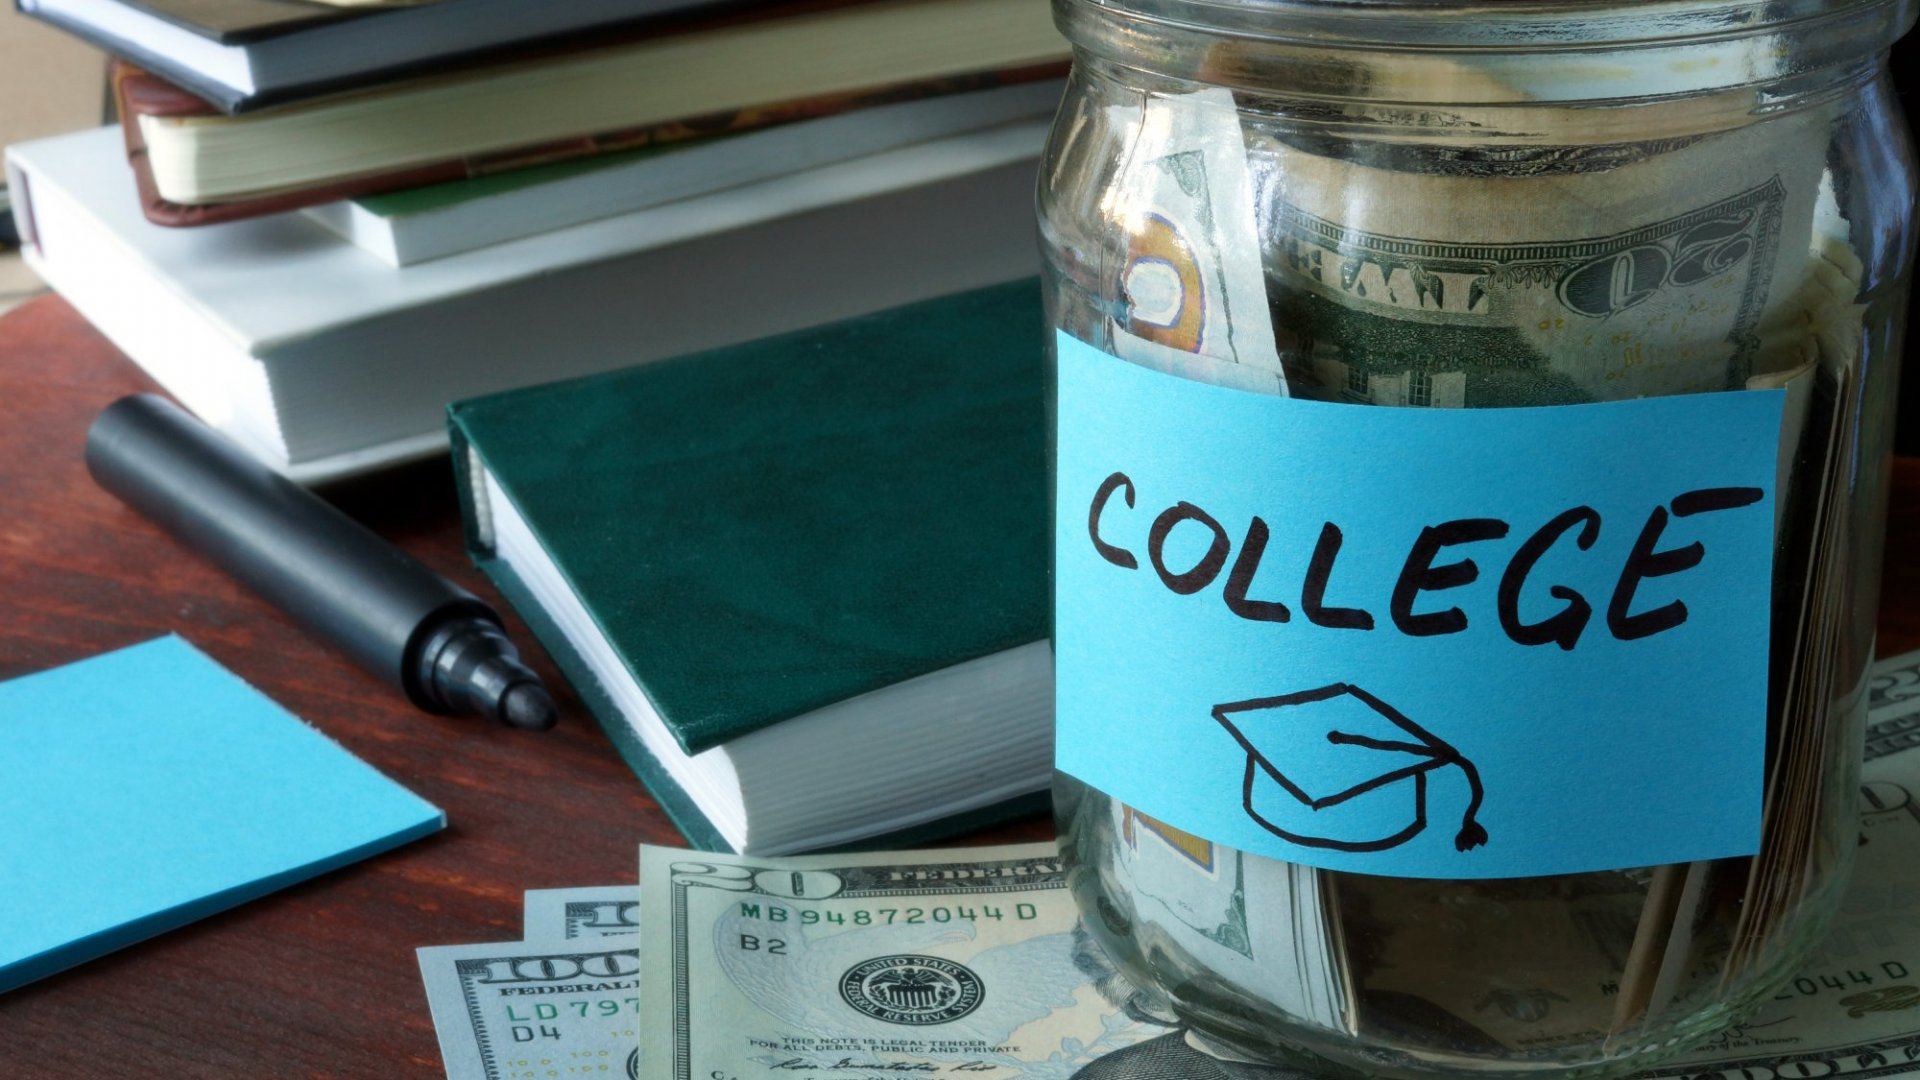 To prepare your child to be financially responsible throughout college, it's important to have certain conversations with them before they walk onto campus.